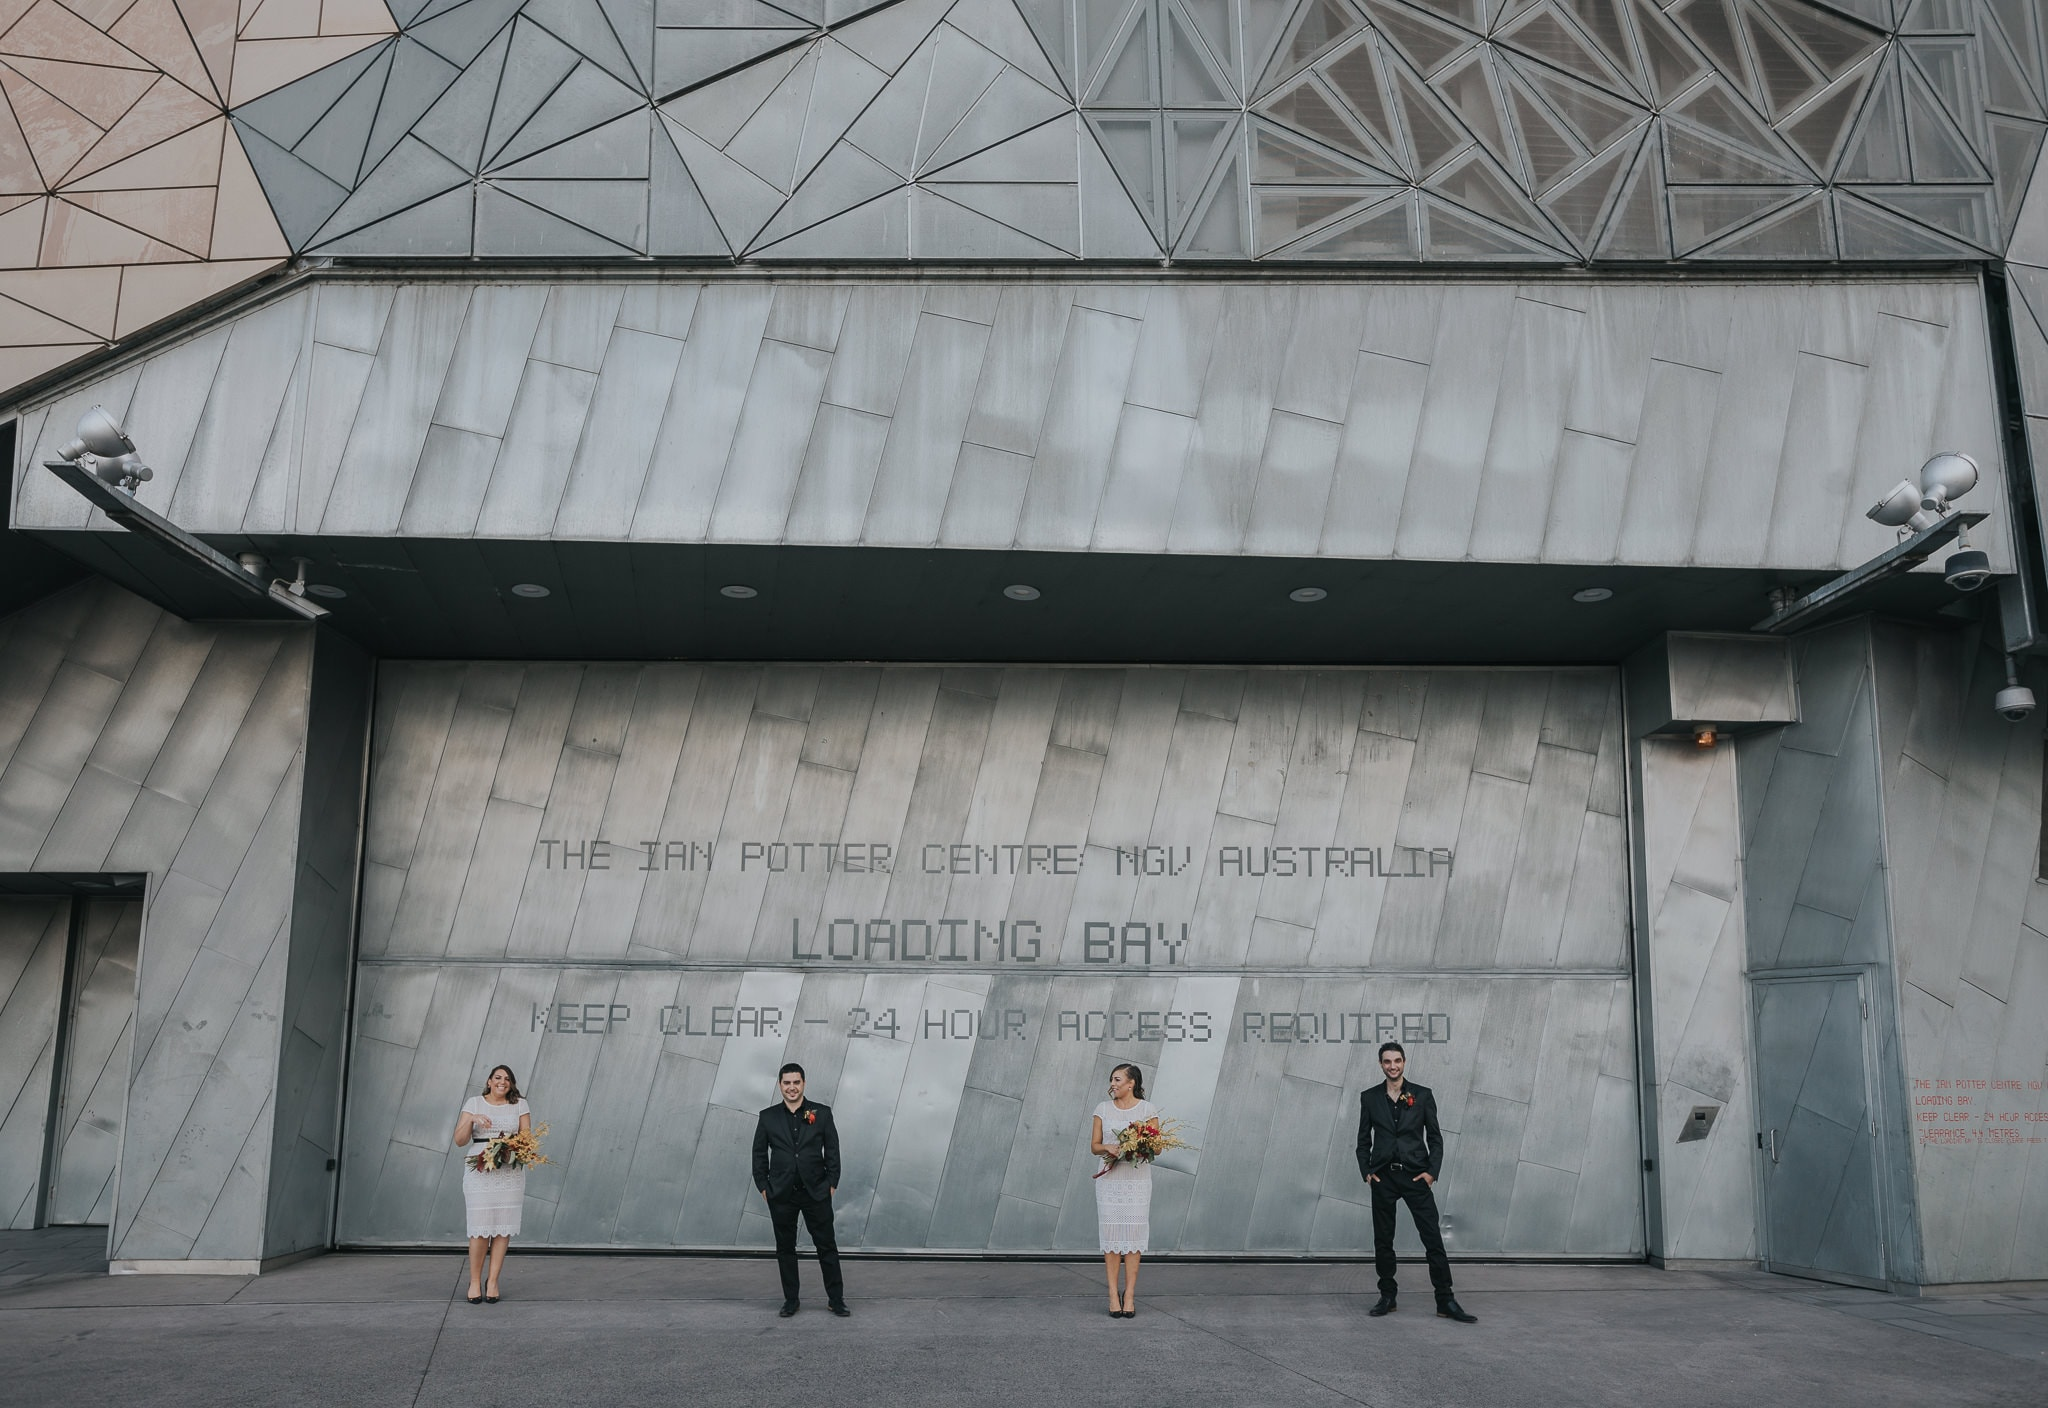 Bridesmaids & Groomsmen - Creative wedding photography in Melbourne at Federation Square - Melbourne CBD